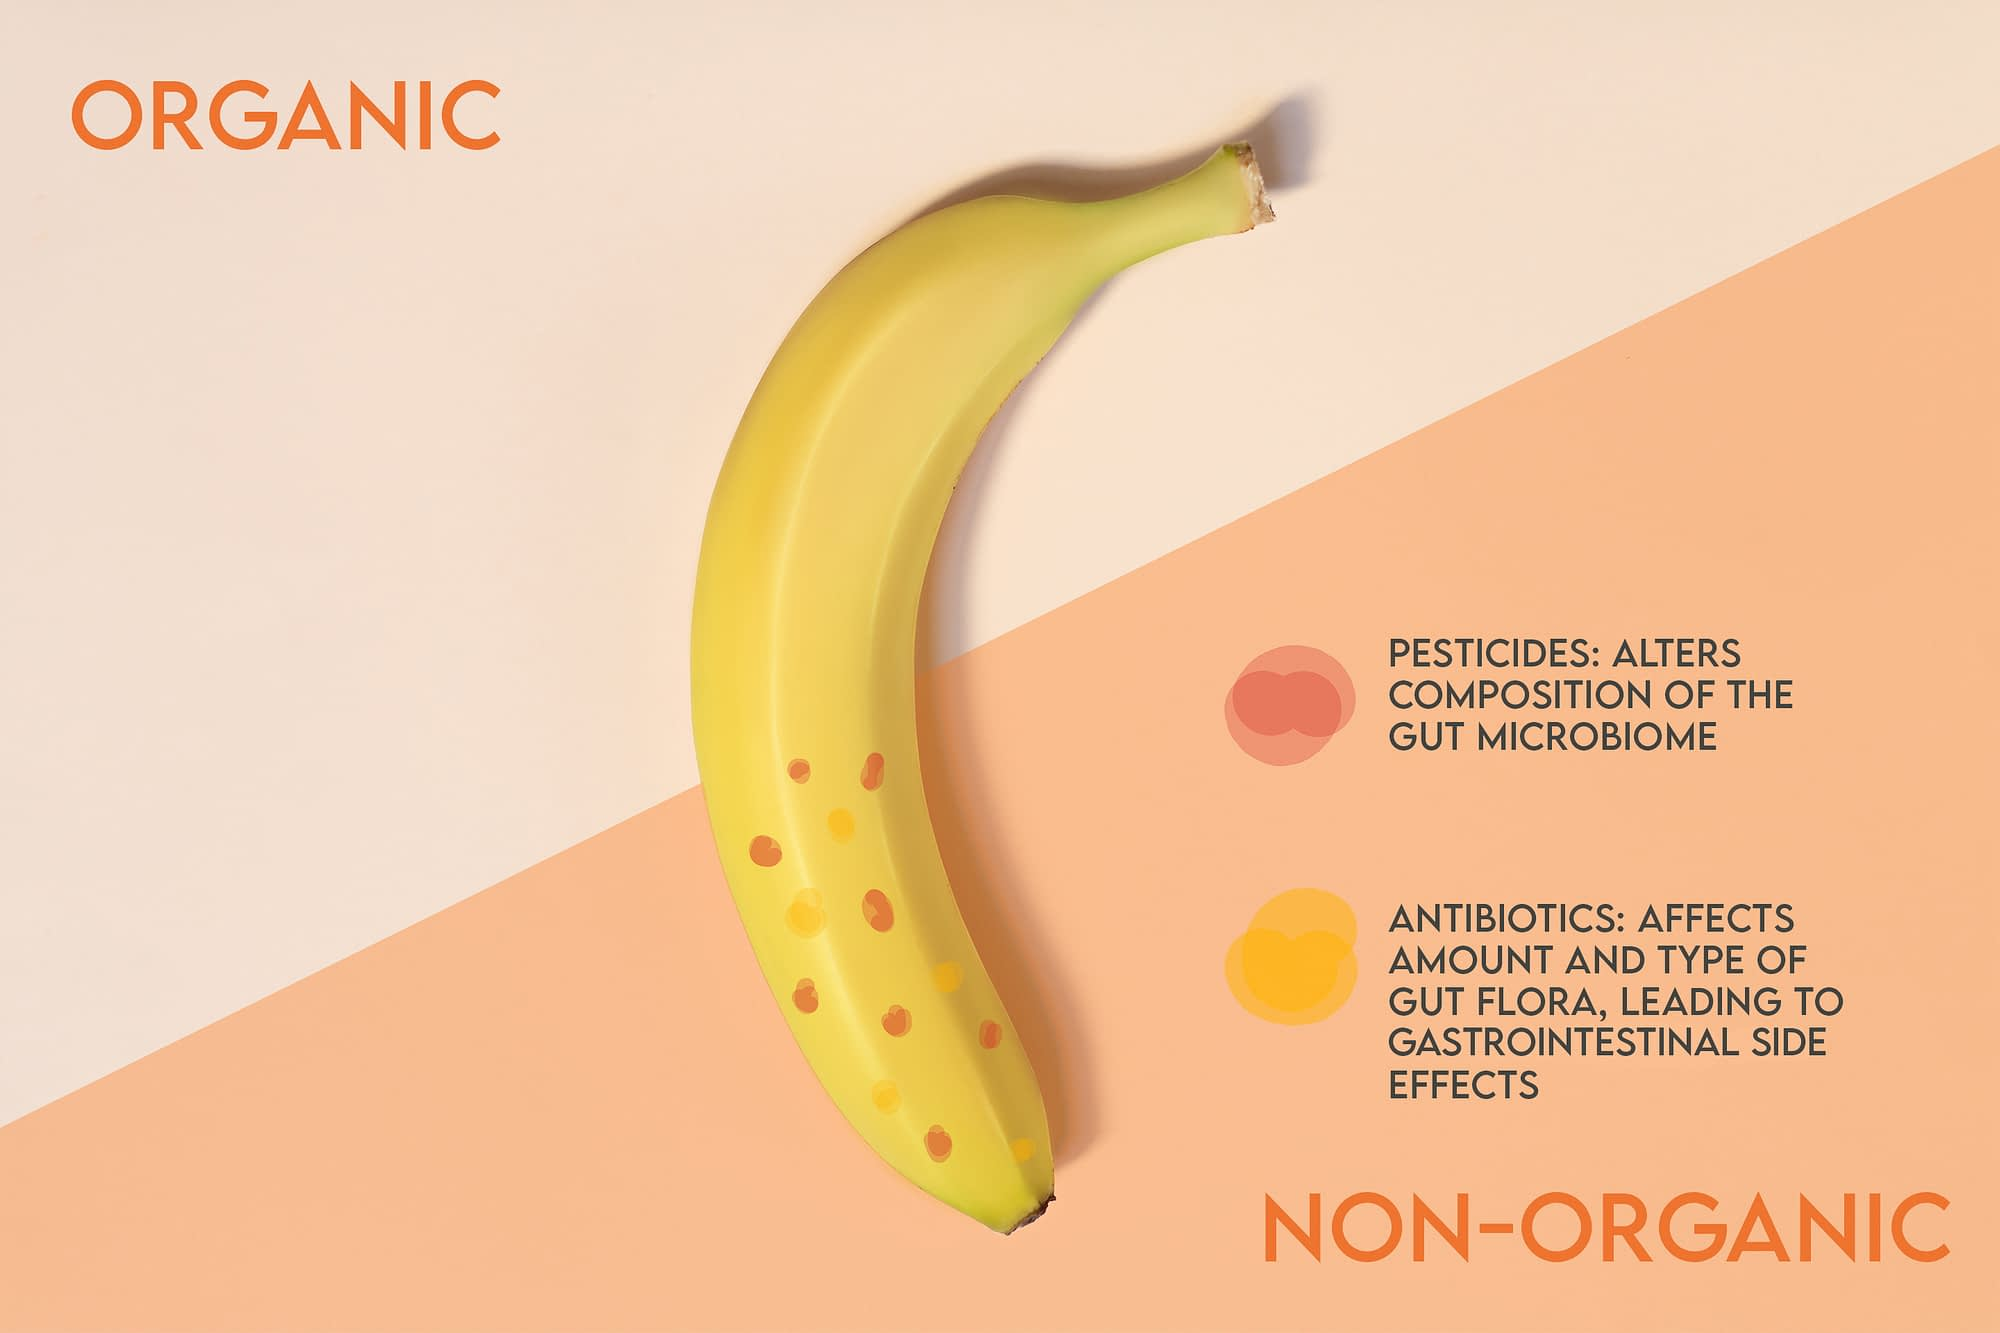 Graphic of banana, with non-organic side showing visible pesticides and antibiotics.